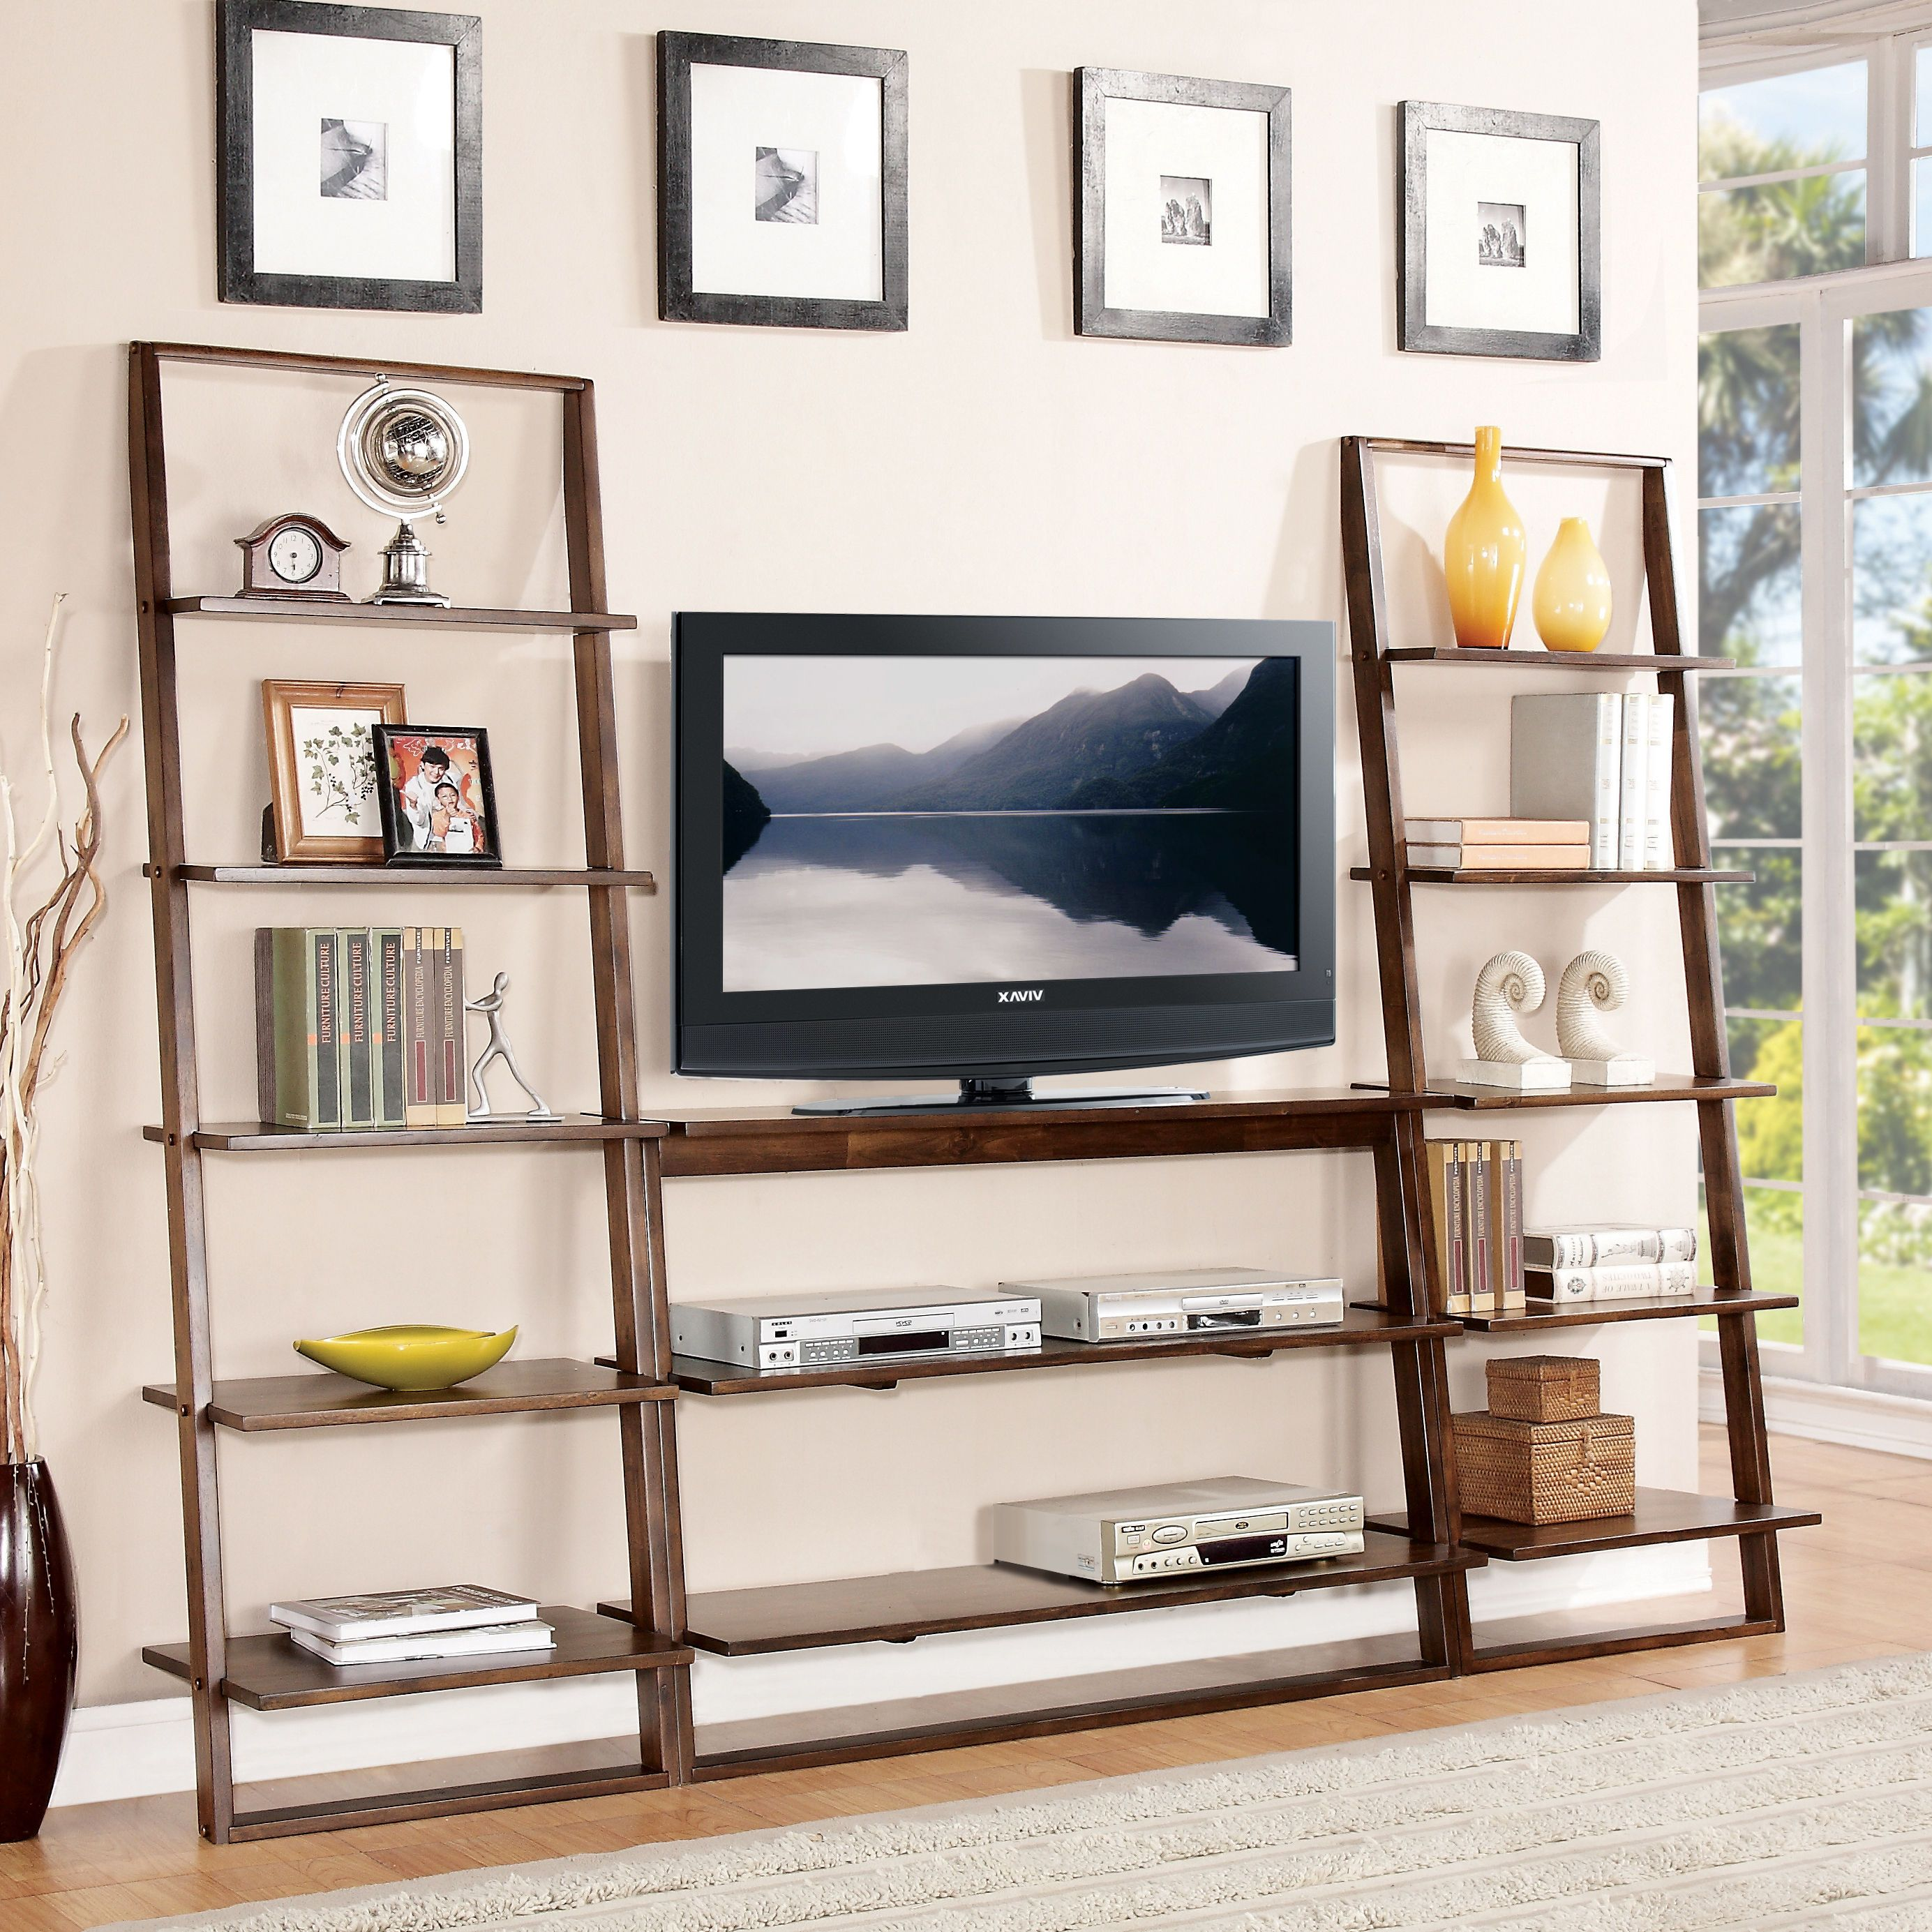 home garden of bookcases and cabinet free america overstock in with purpose stand tv display multi bookcase furniture wood espresso product cappuccino today shipping